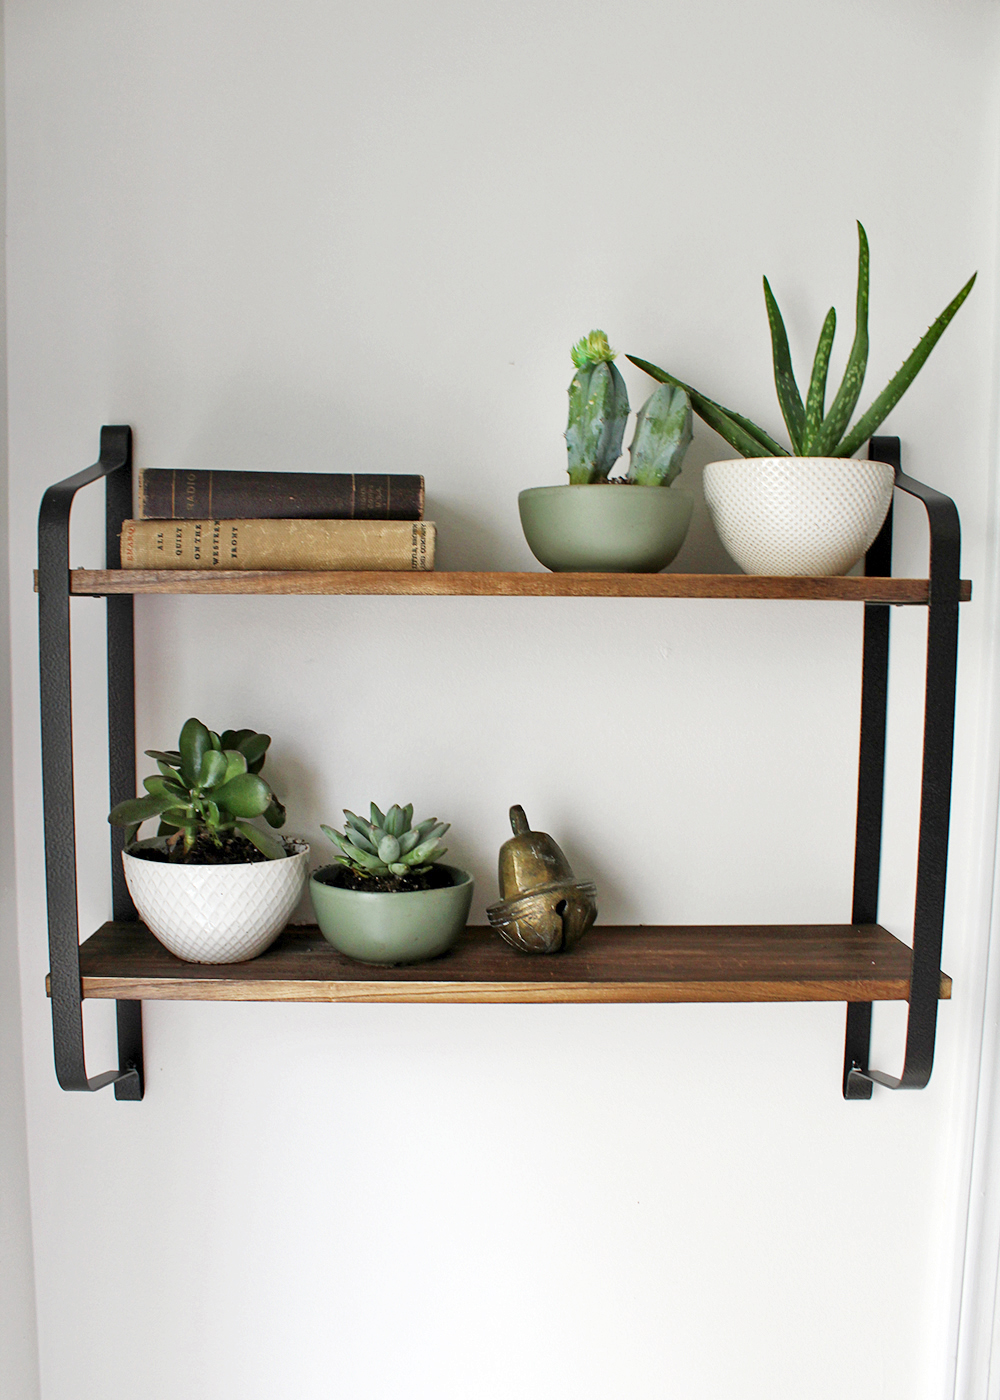 rustic wood with metal shelving decorated with live plants and vintage books